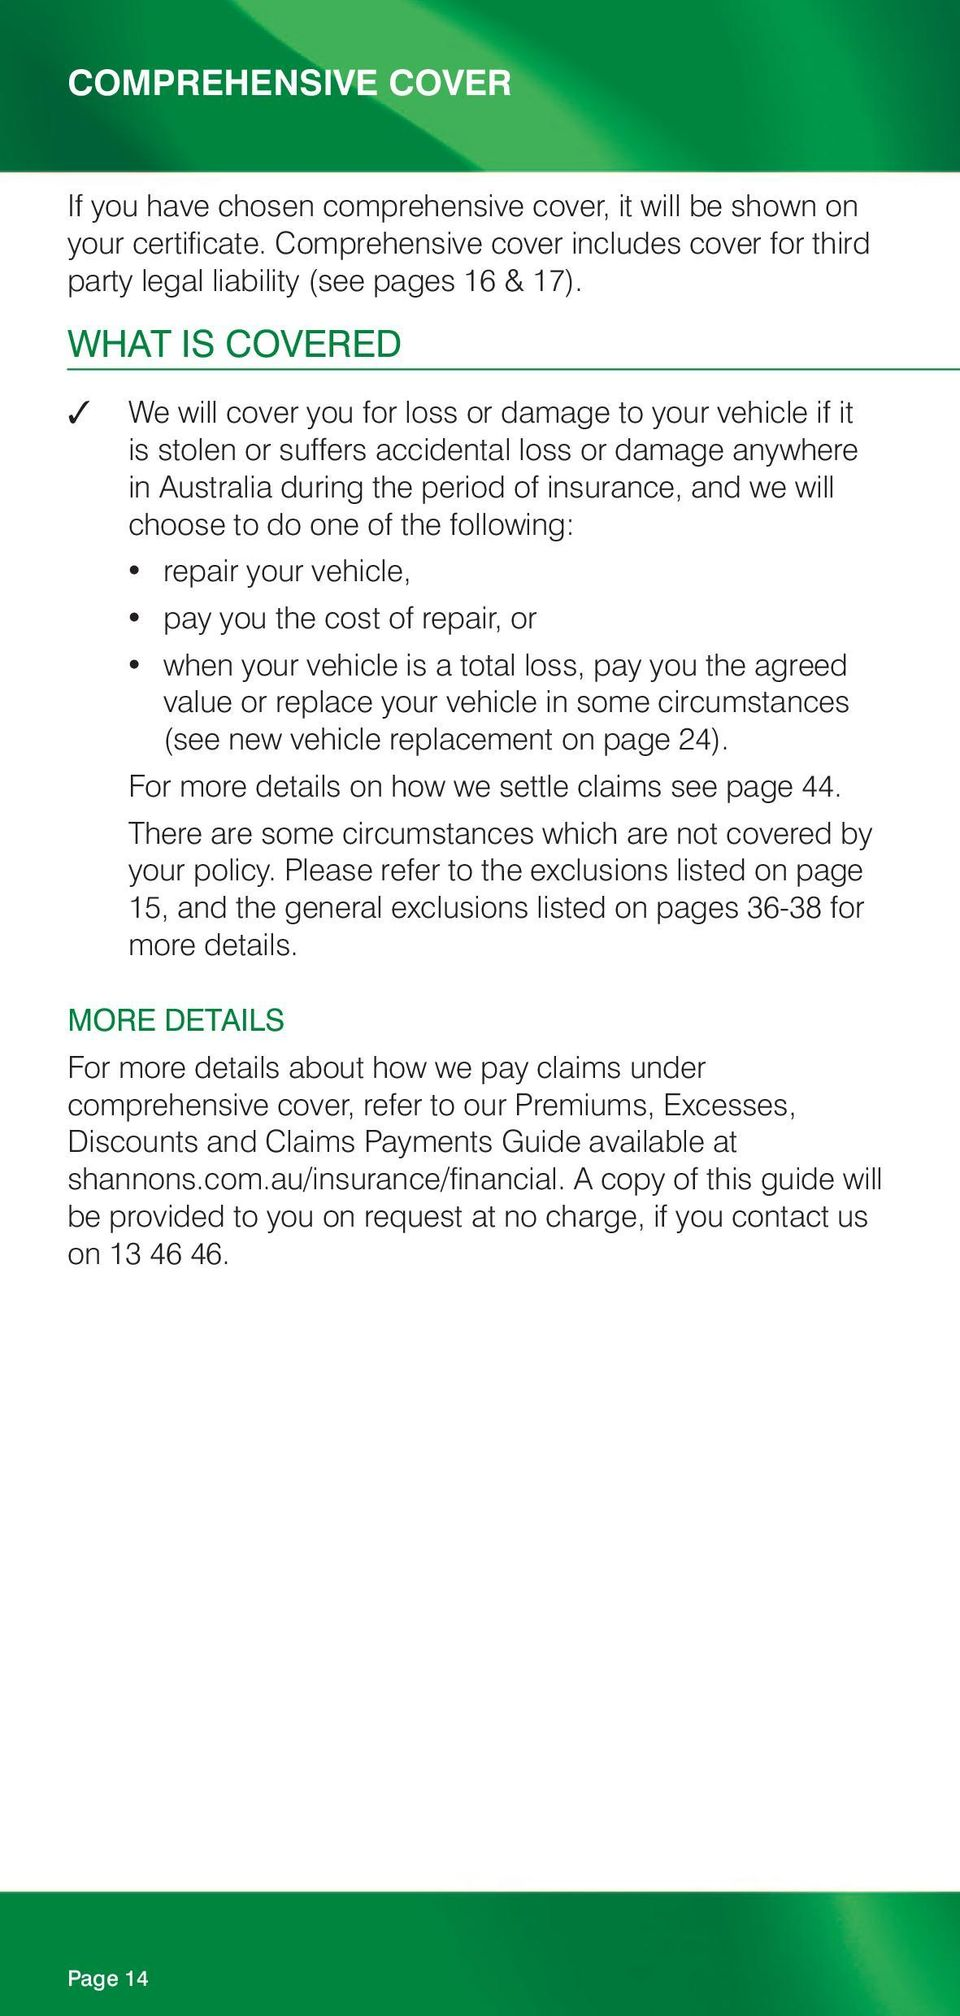 do one of the following: repair your vehicle, pay you the cost of repair, or when your vehicle is a total loss, pay you the agreed value or replace your vehicle in some circumstances (see new vehicle